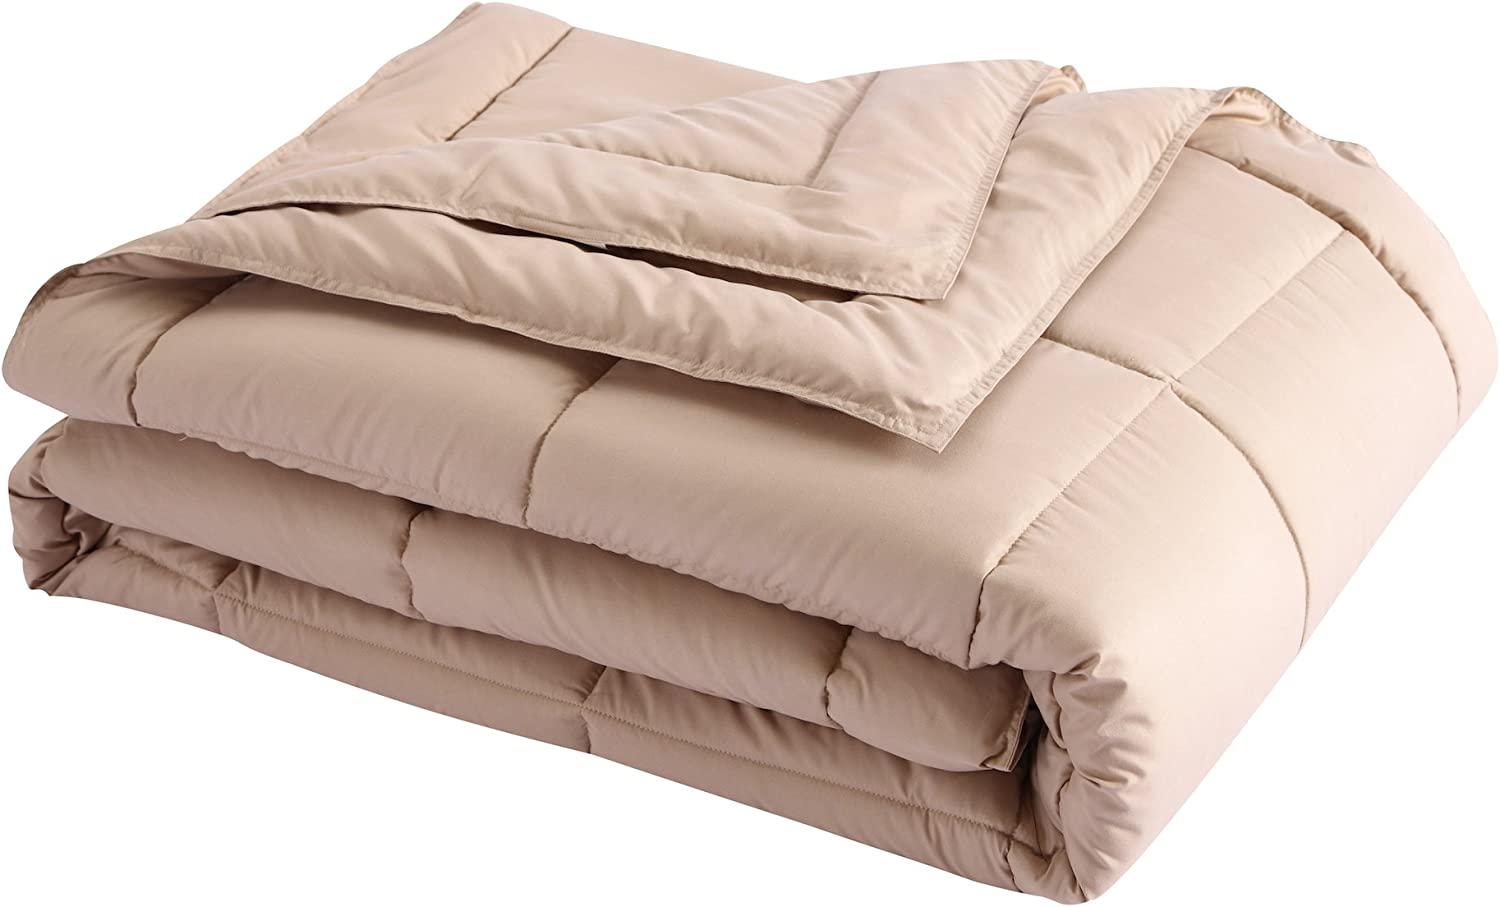 Lotus Home Down Alternative Blanket With Microfiber Cover and Water and Stain Resistance, Full/Queen, Taupe